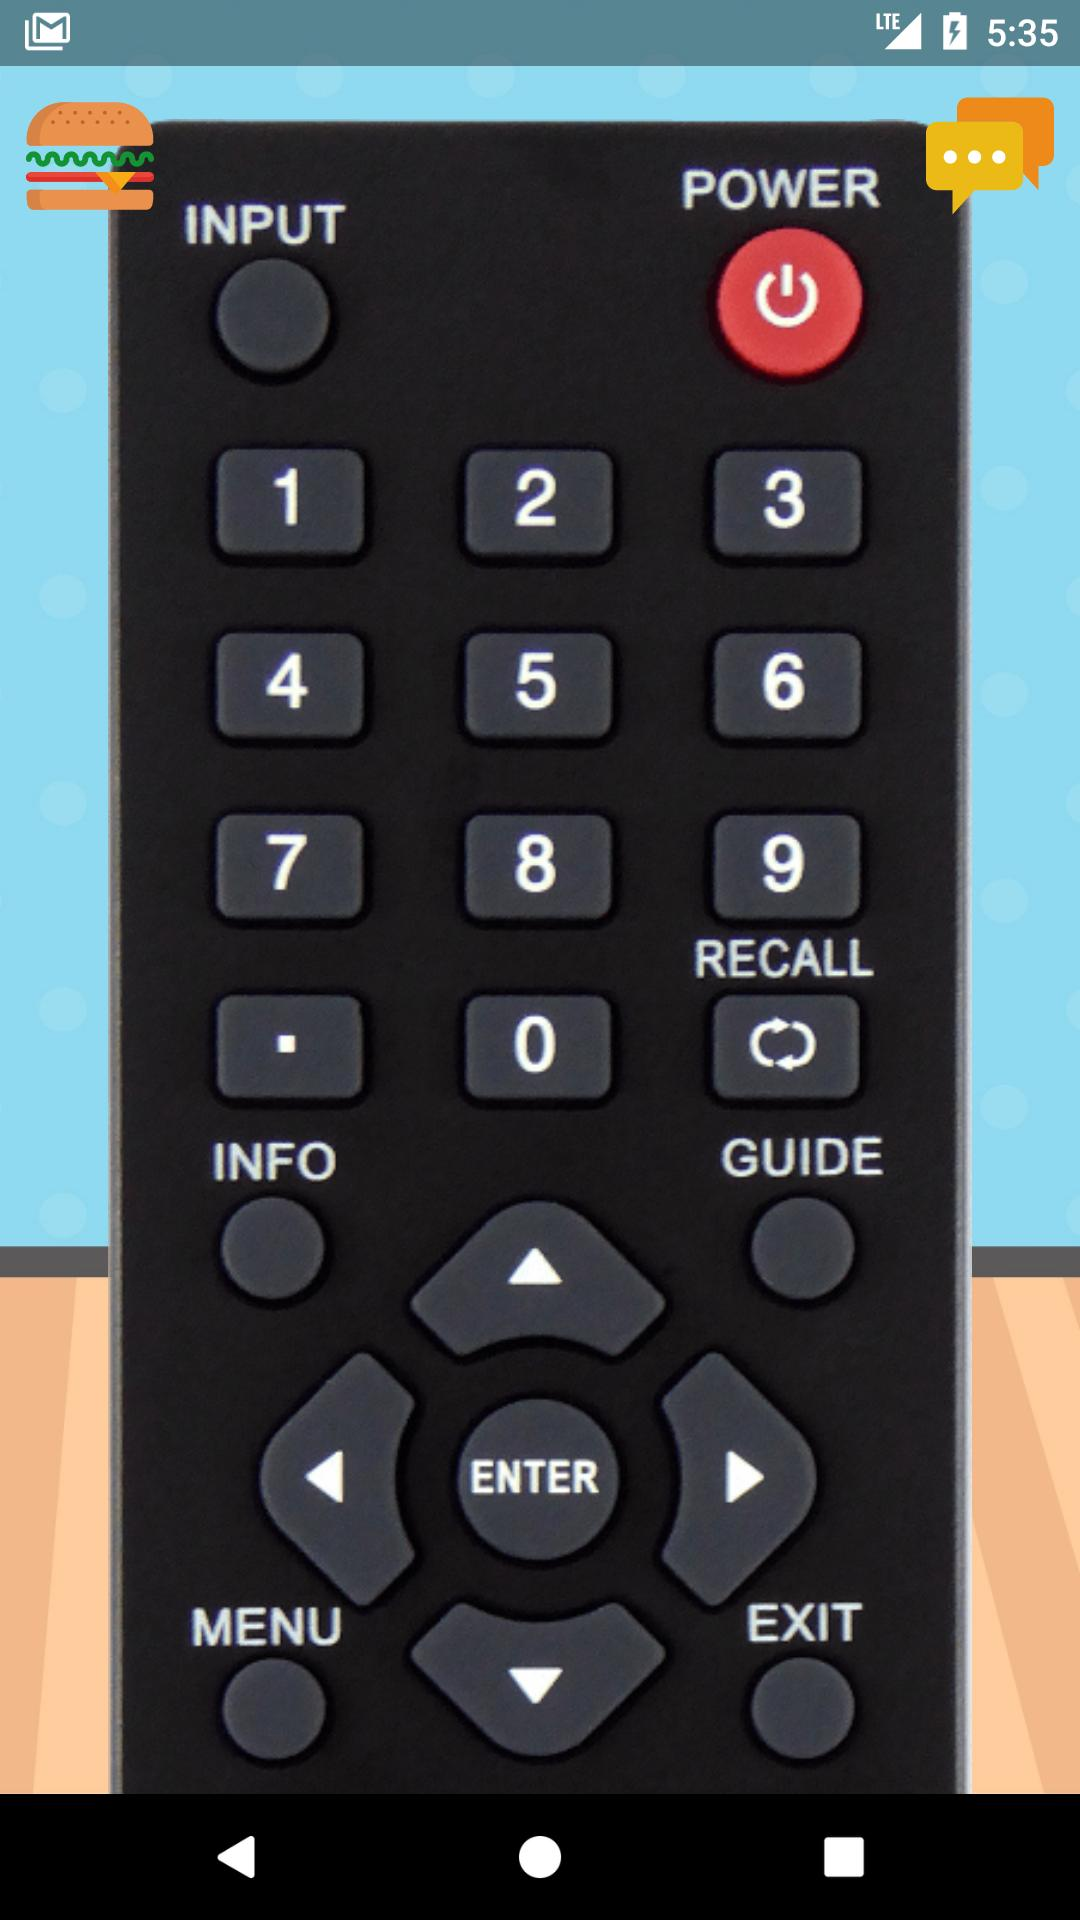 Remote Control For Dynex Tv For Android Apk Download